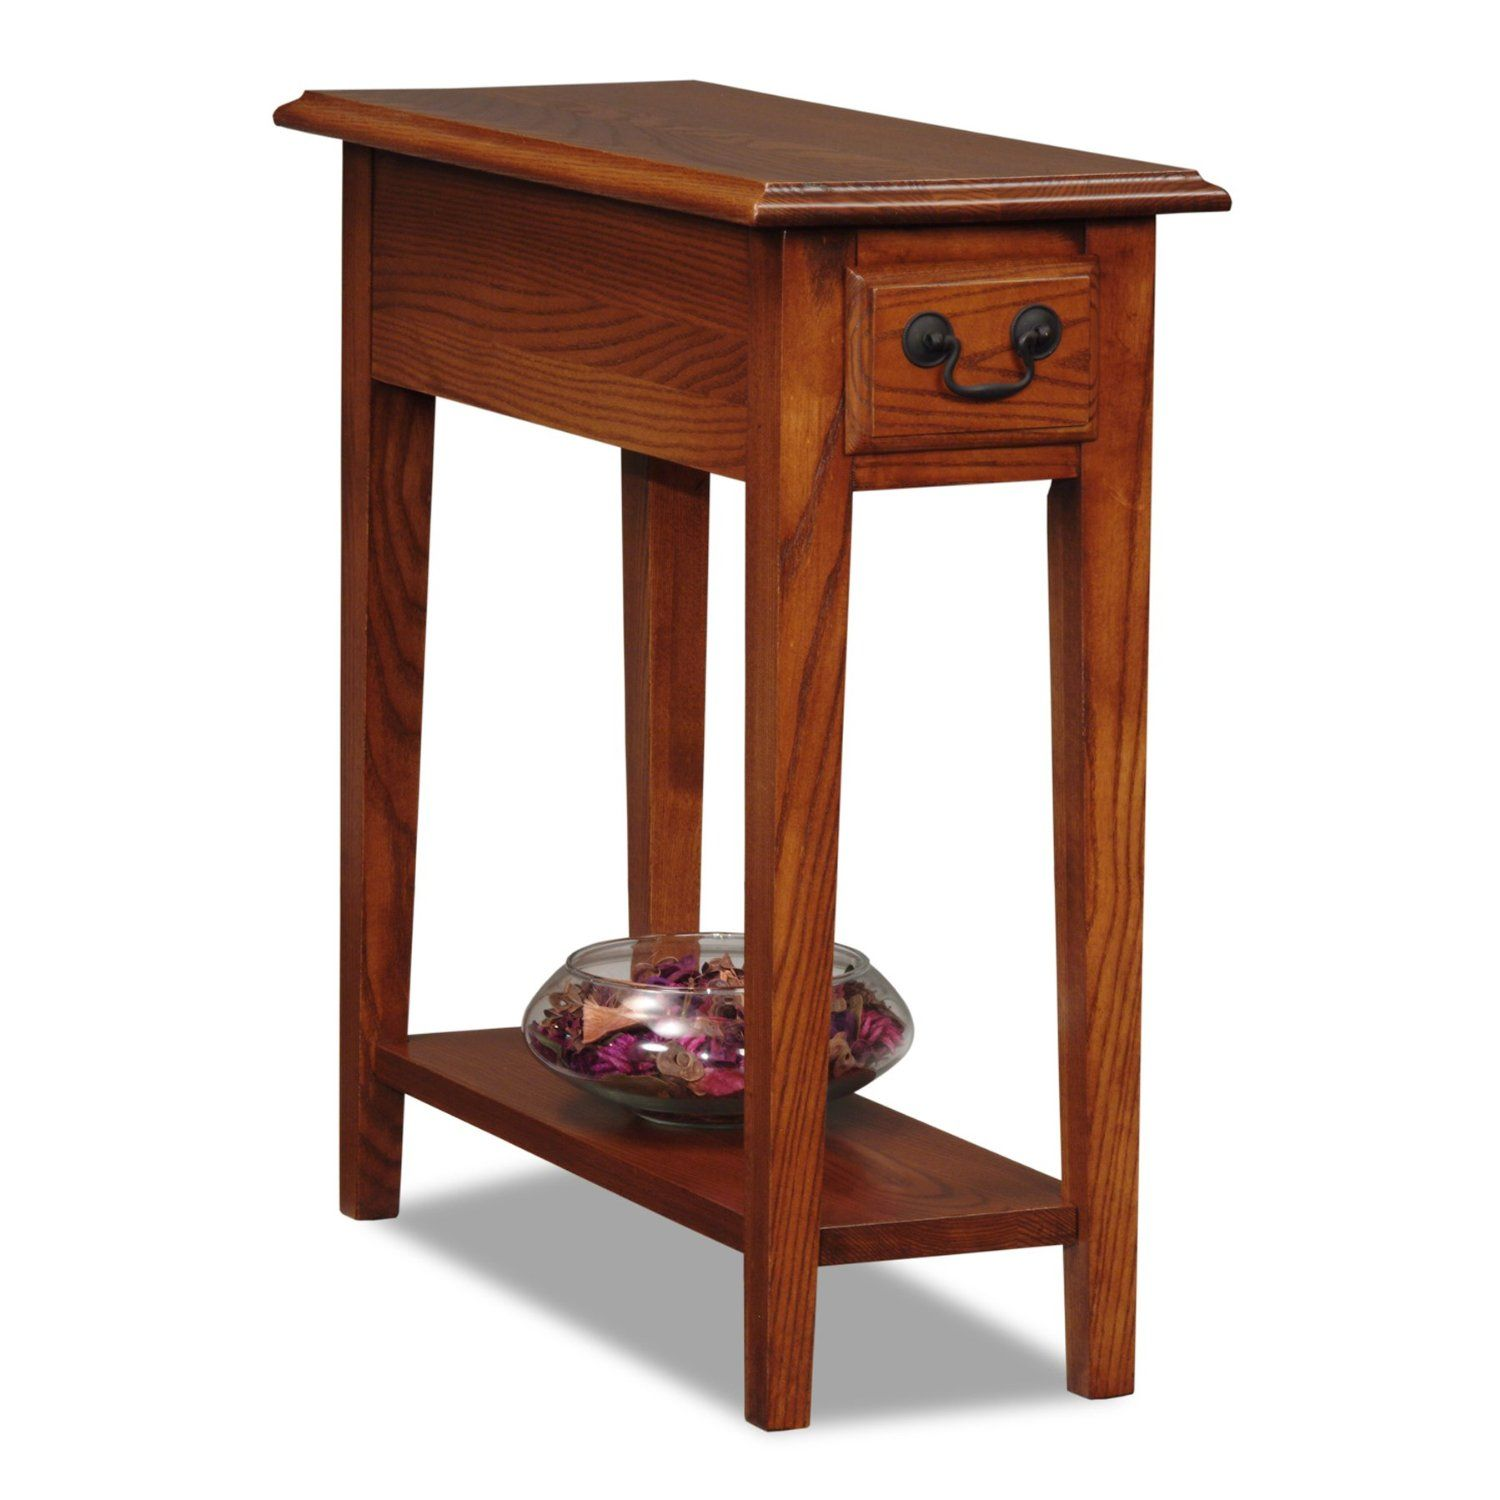 Amazon Com Leick Chair Side End Table Medium Oak Finish Narrow End Table Small End Tables Side Table Wood Chair Side Table